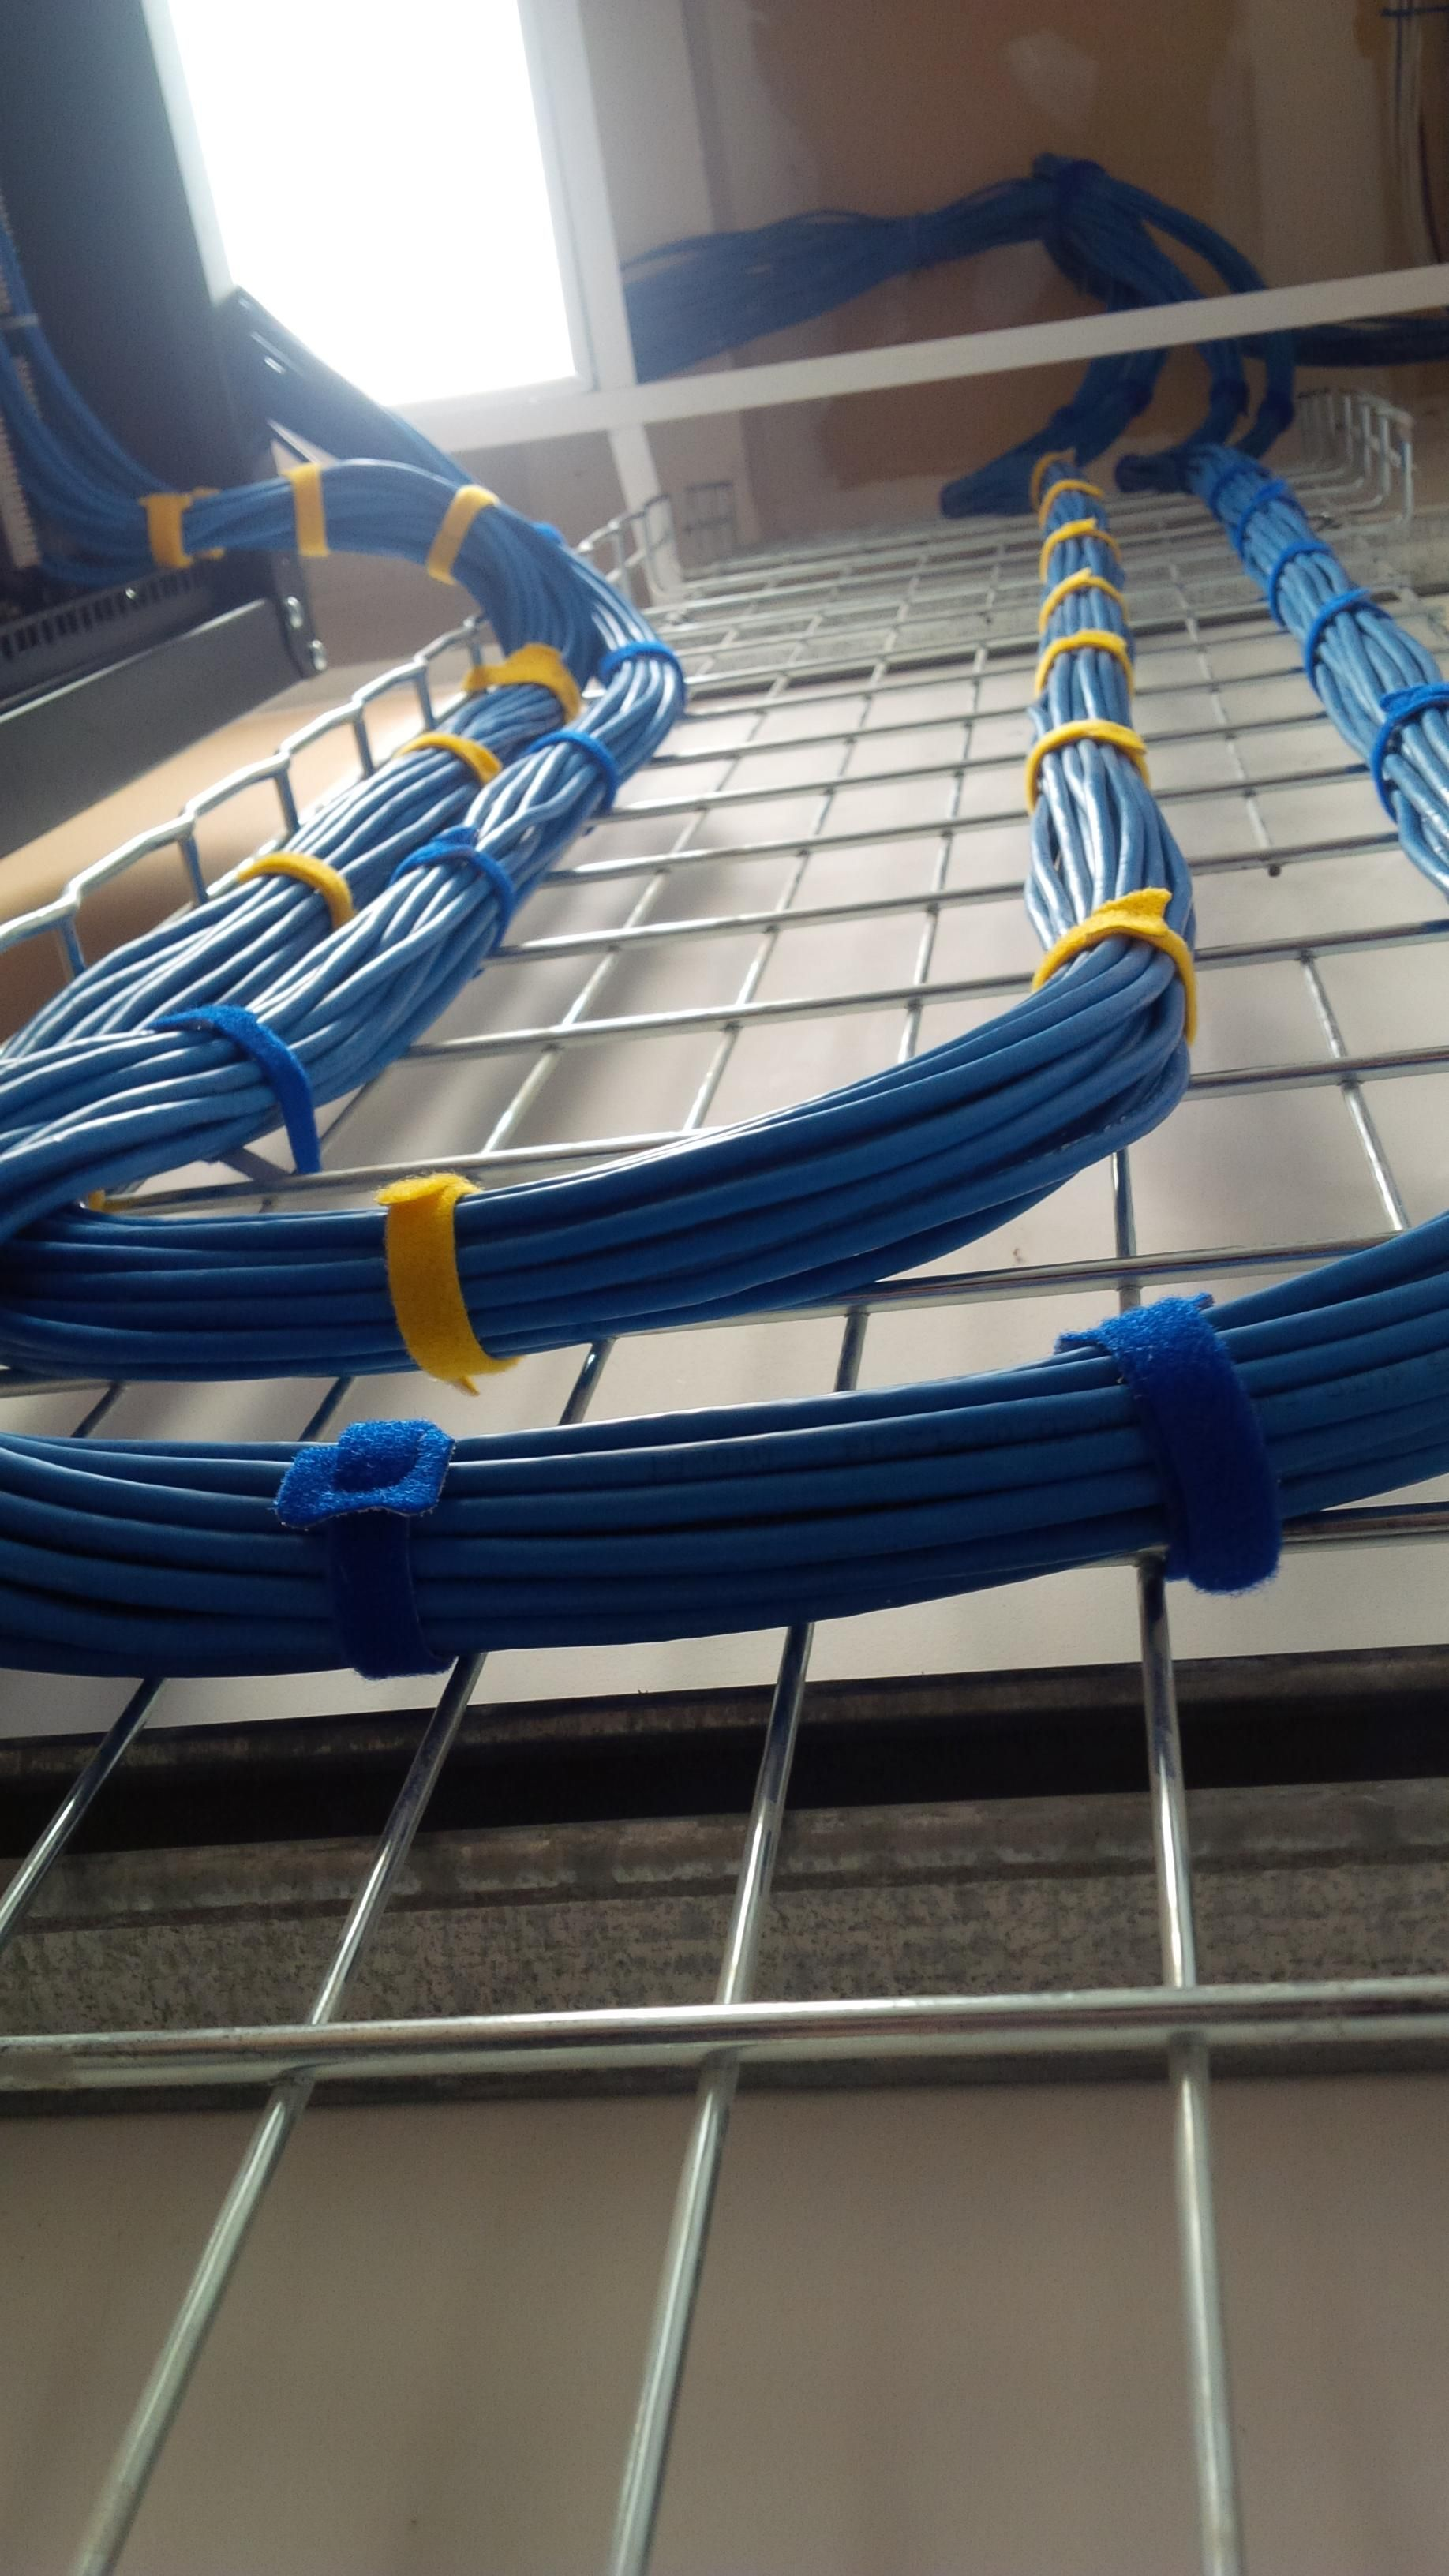 medium resolution of running ethernet cables from the ceiling into the server cabinet